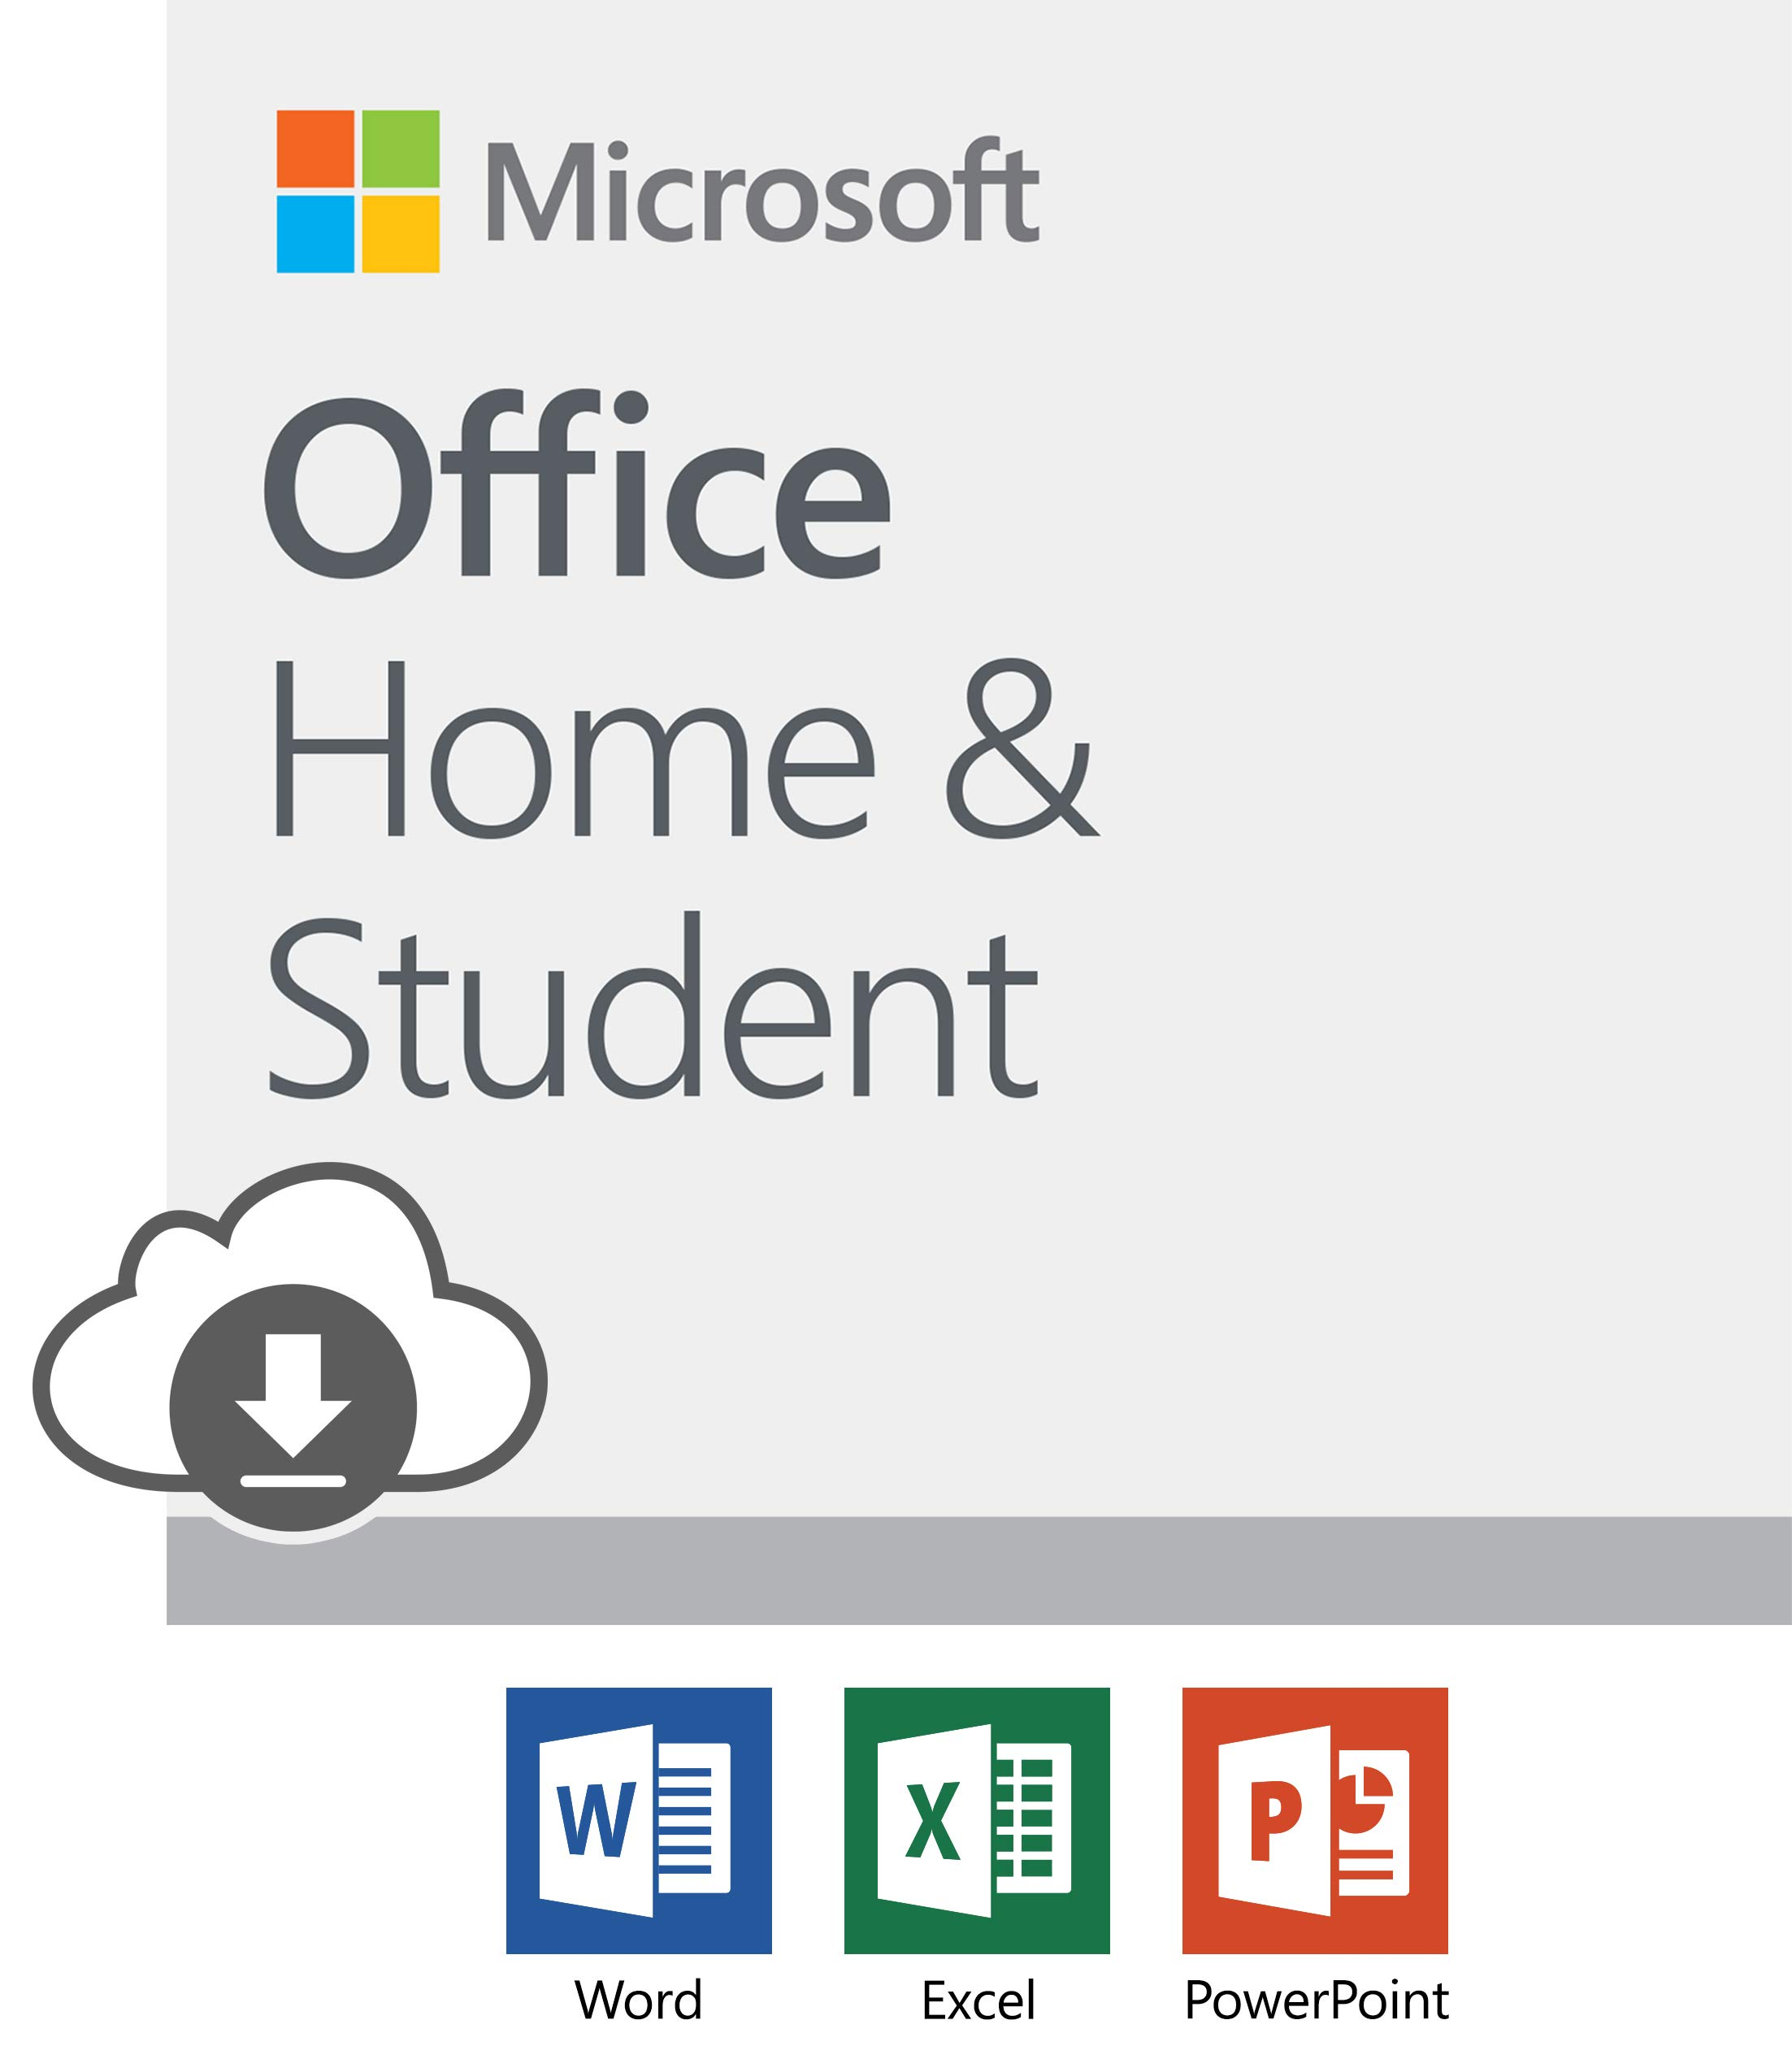 Microsoft Office Home and Student 2019 Download 1 Person Compatible on Windows 10 and Apple macOS by Microsoft